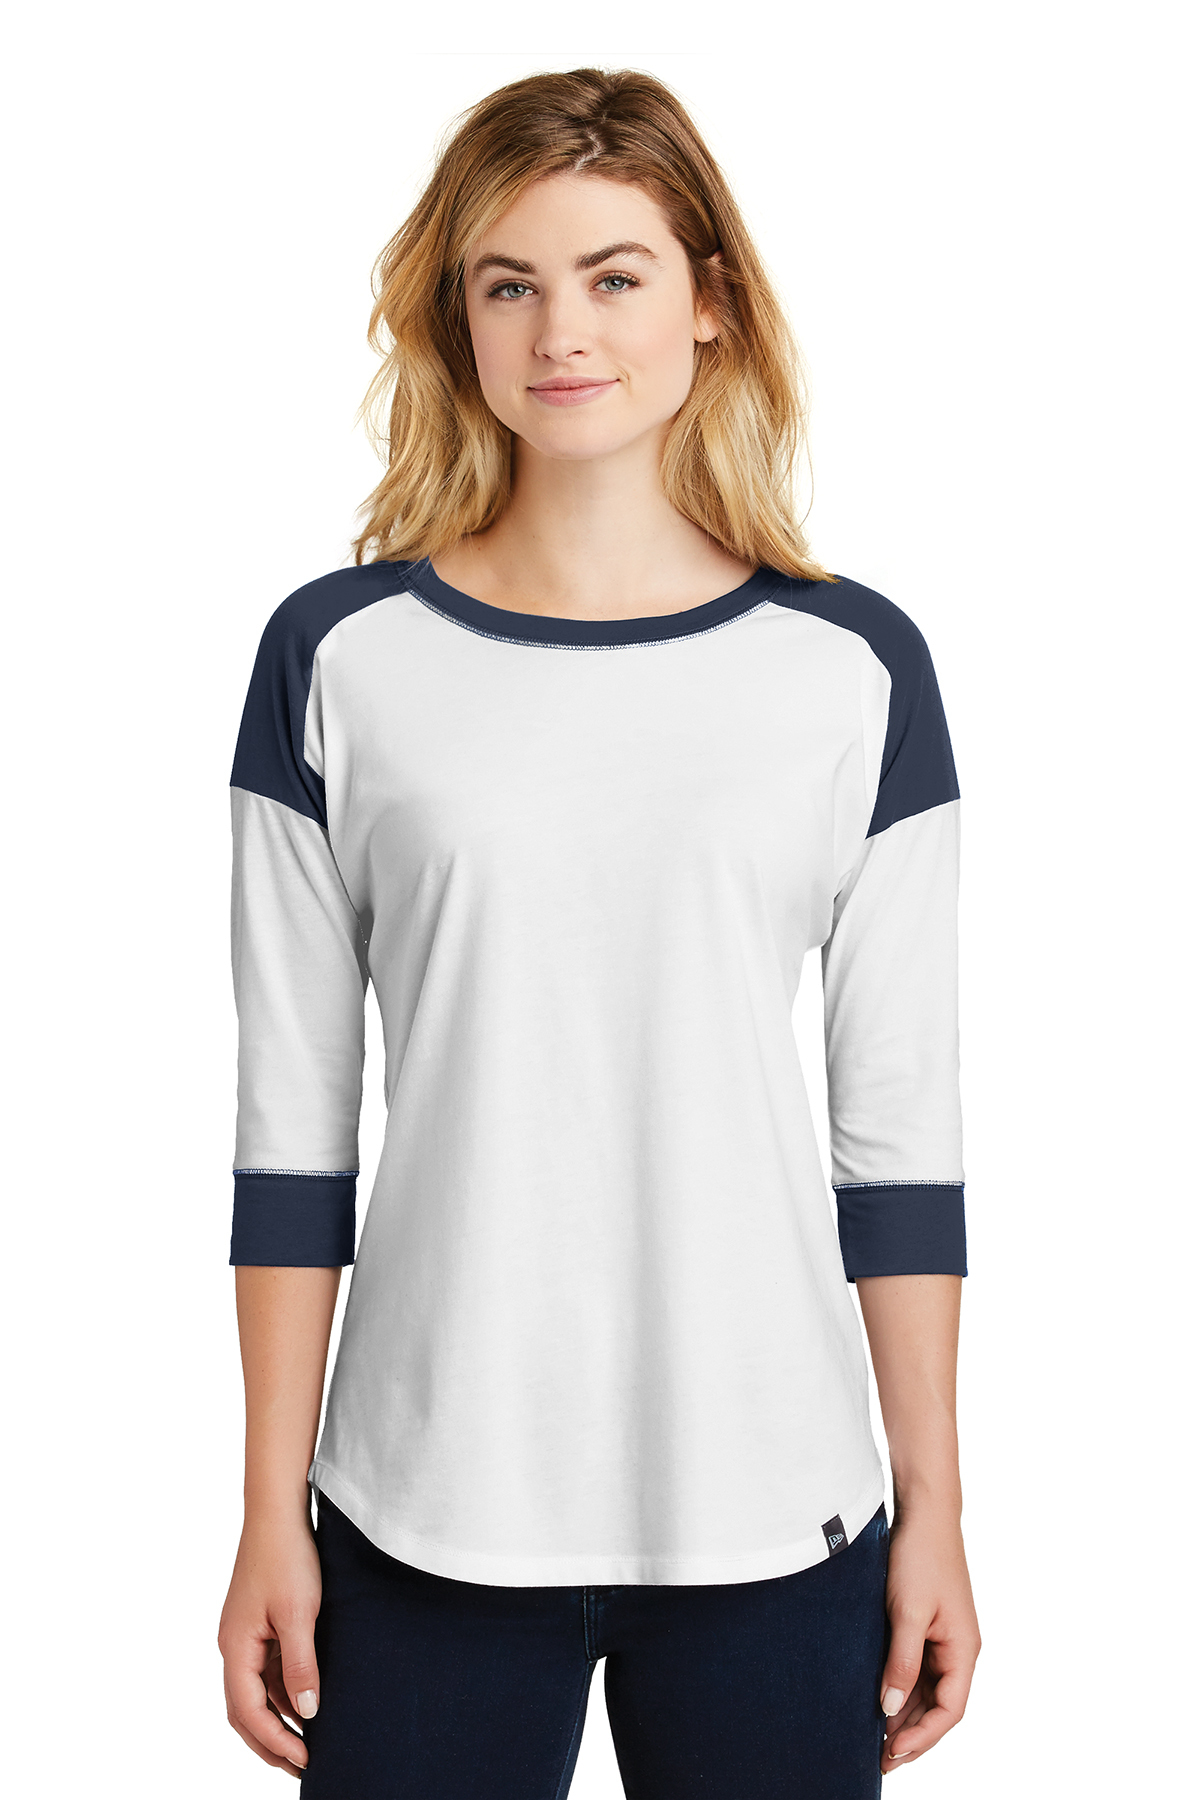 6c70f445f8c New Era® Ladies Heritage Blend 3 4-Sleeve Baseball Raglan Tee